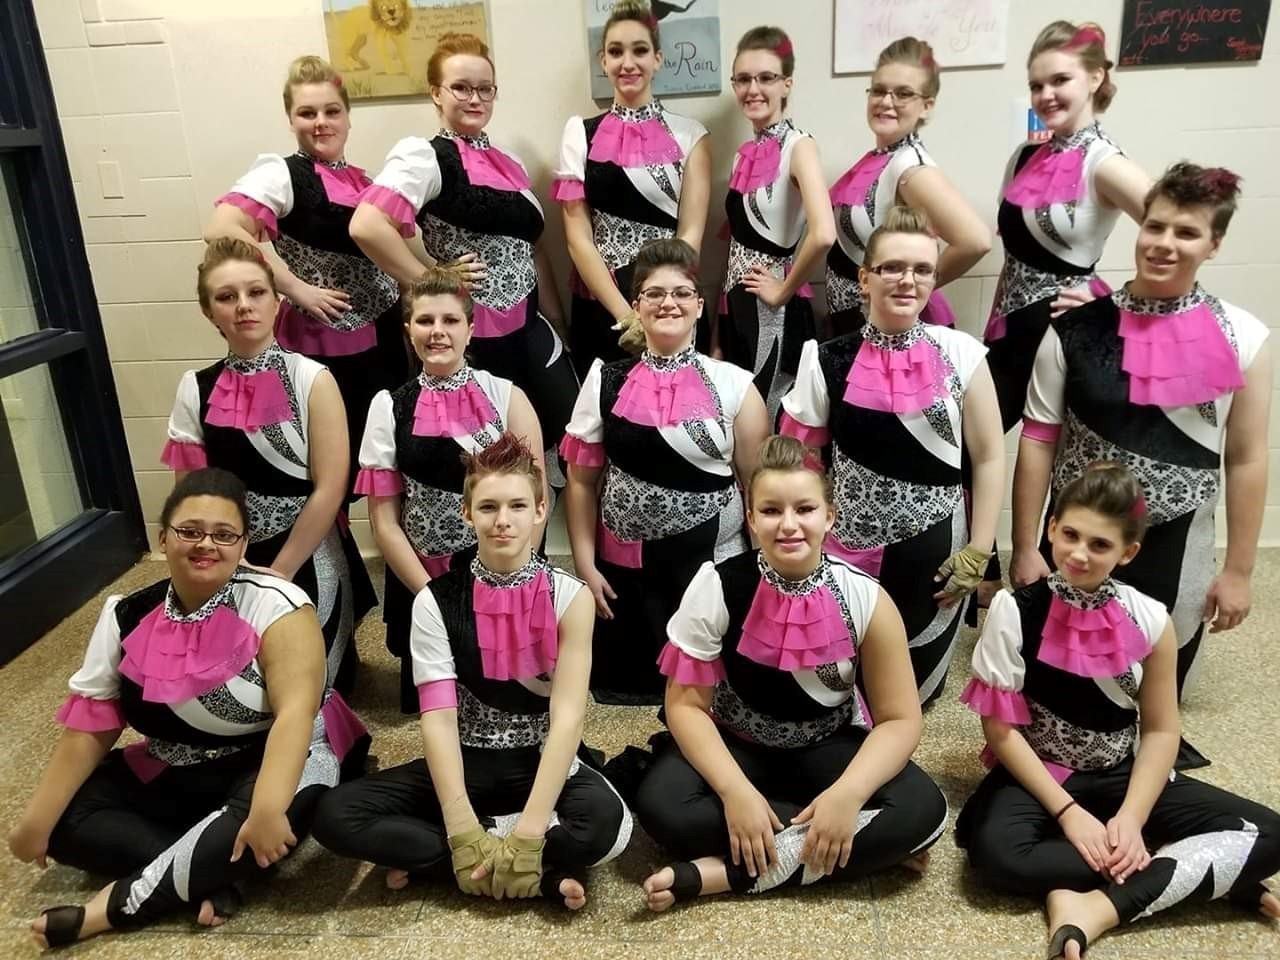 winterguard members posing in their pink, white and black costume from their win